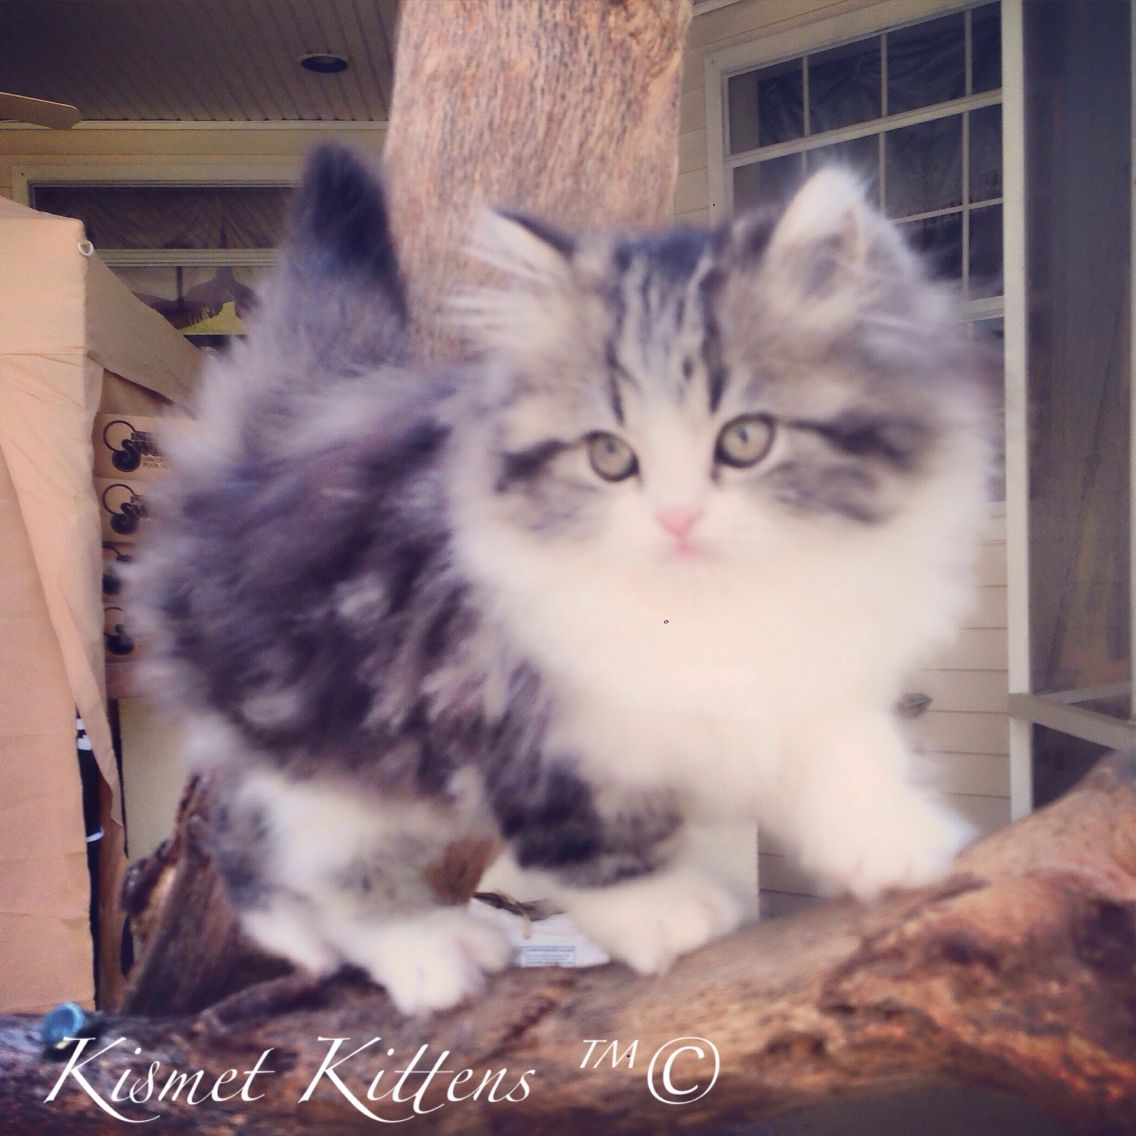 For Sale Kismet Kittens Bicolor Tabby Doll Face Kitten Female Ready To Go 1 25 15 To Reserve Text Persian Cat Doll Face Teacup Persian Kittens Persian Cat